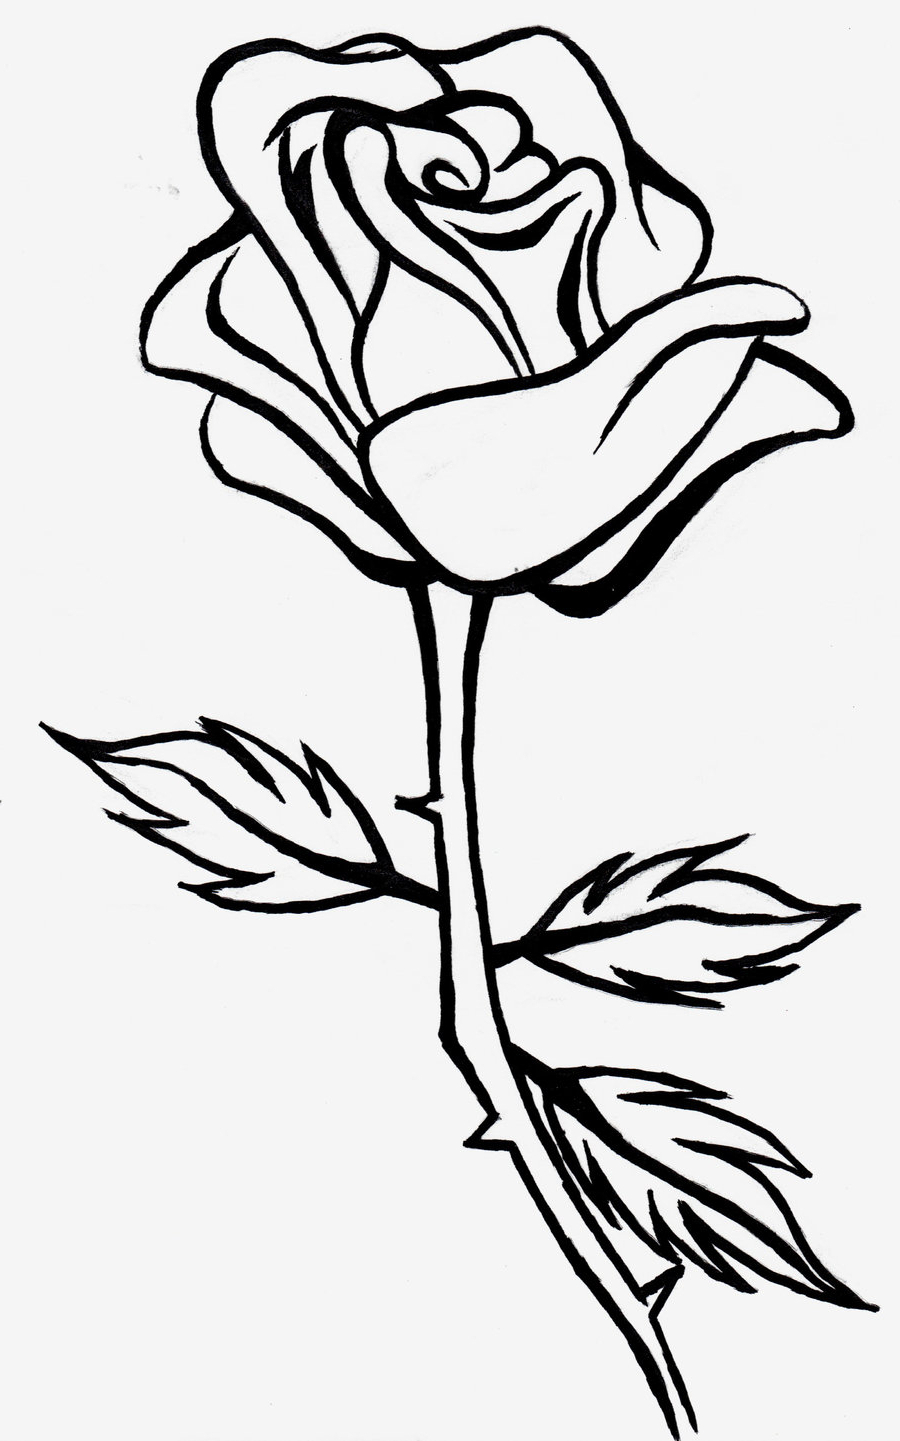 900x1441 Full Hd Rose Line Drawing Photo 3d Best Flower Line Drawings